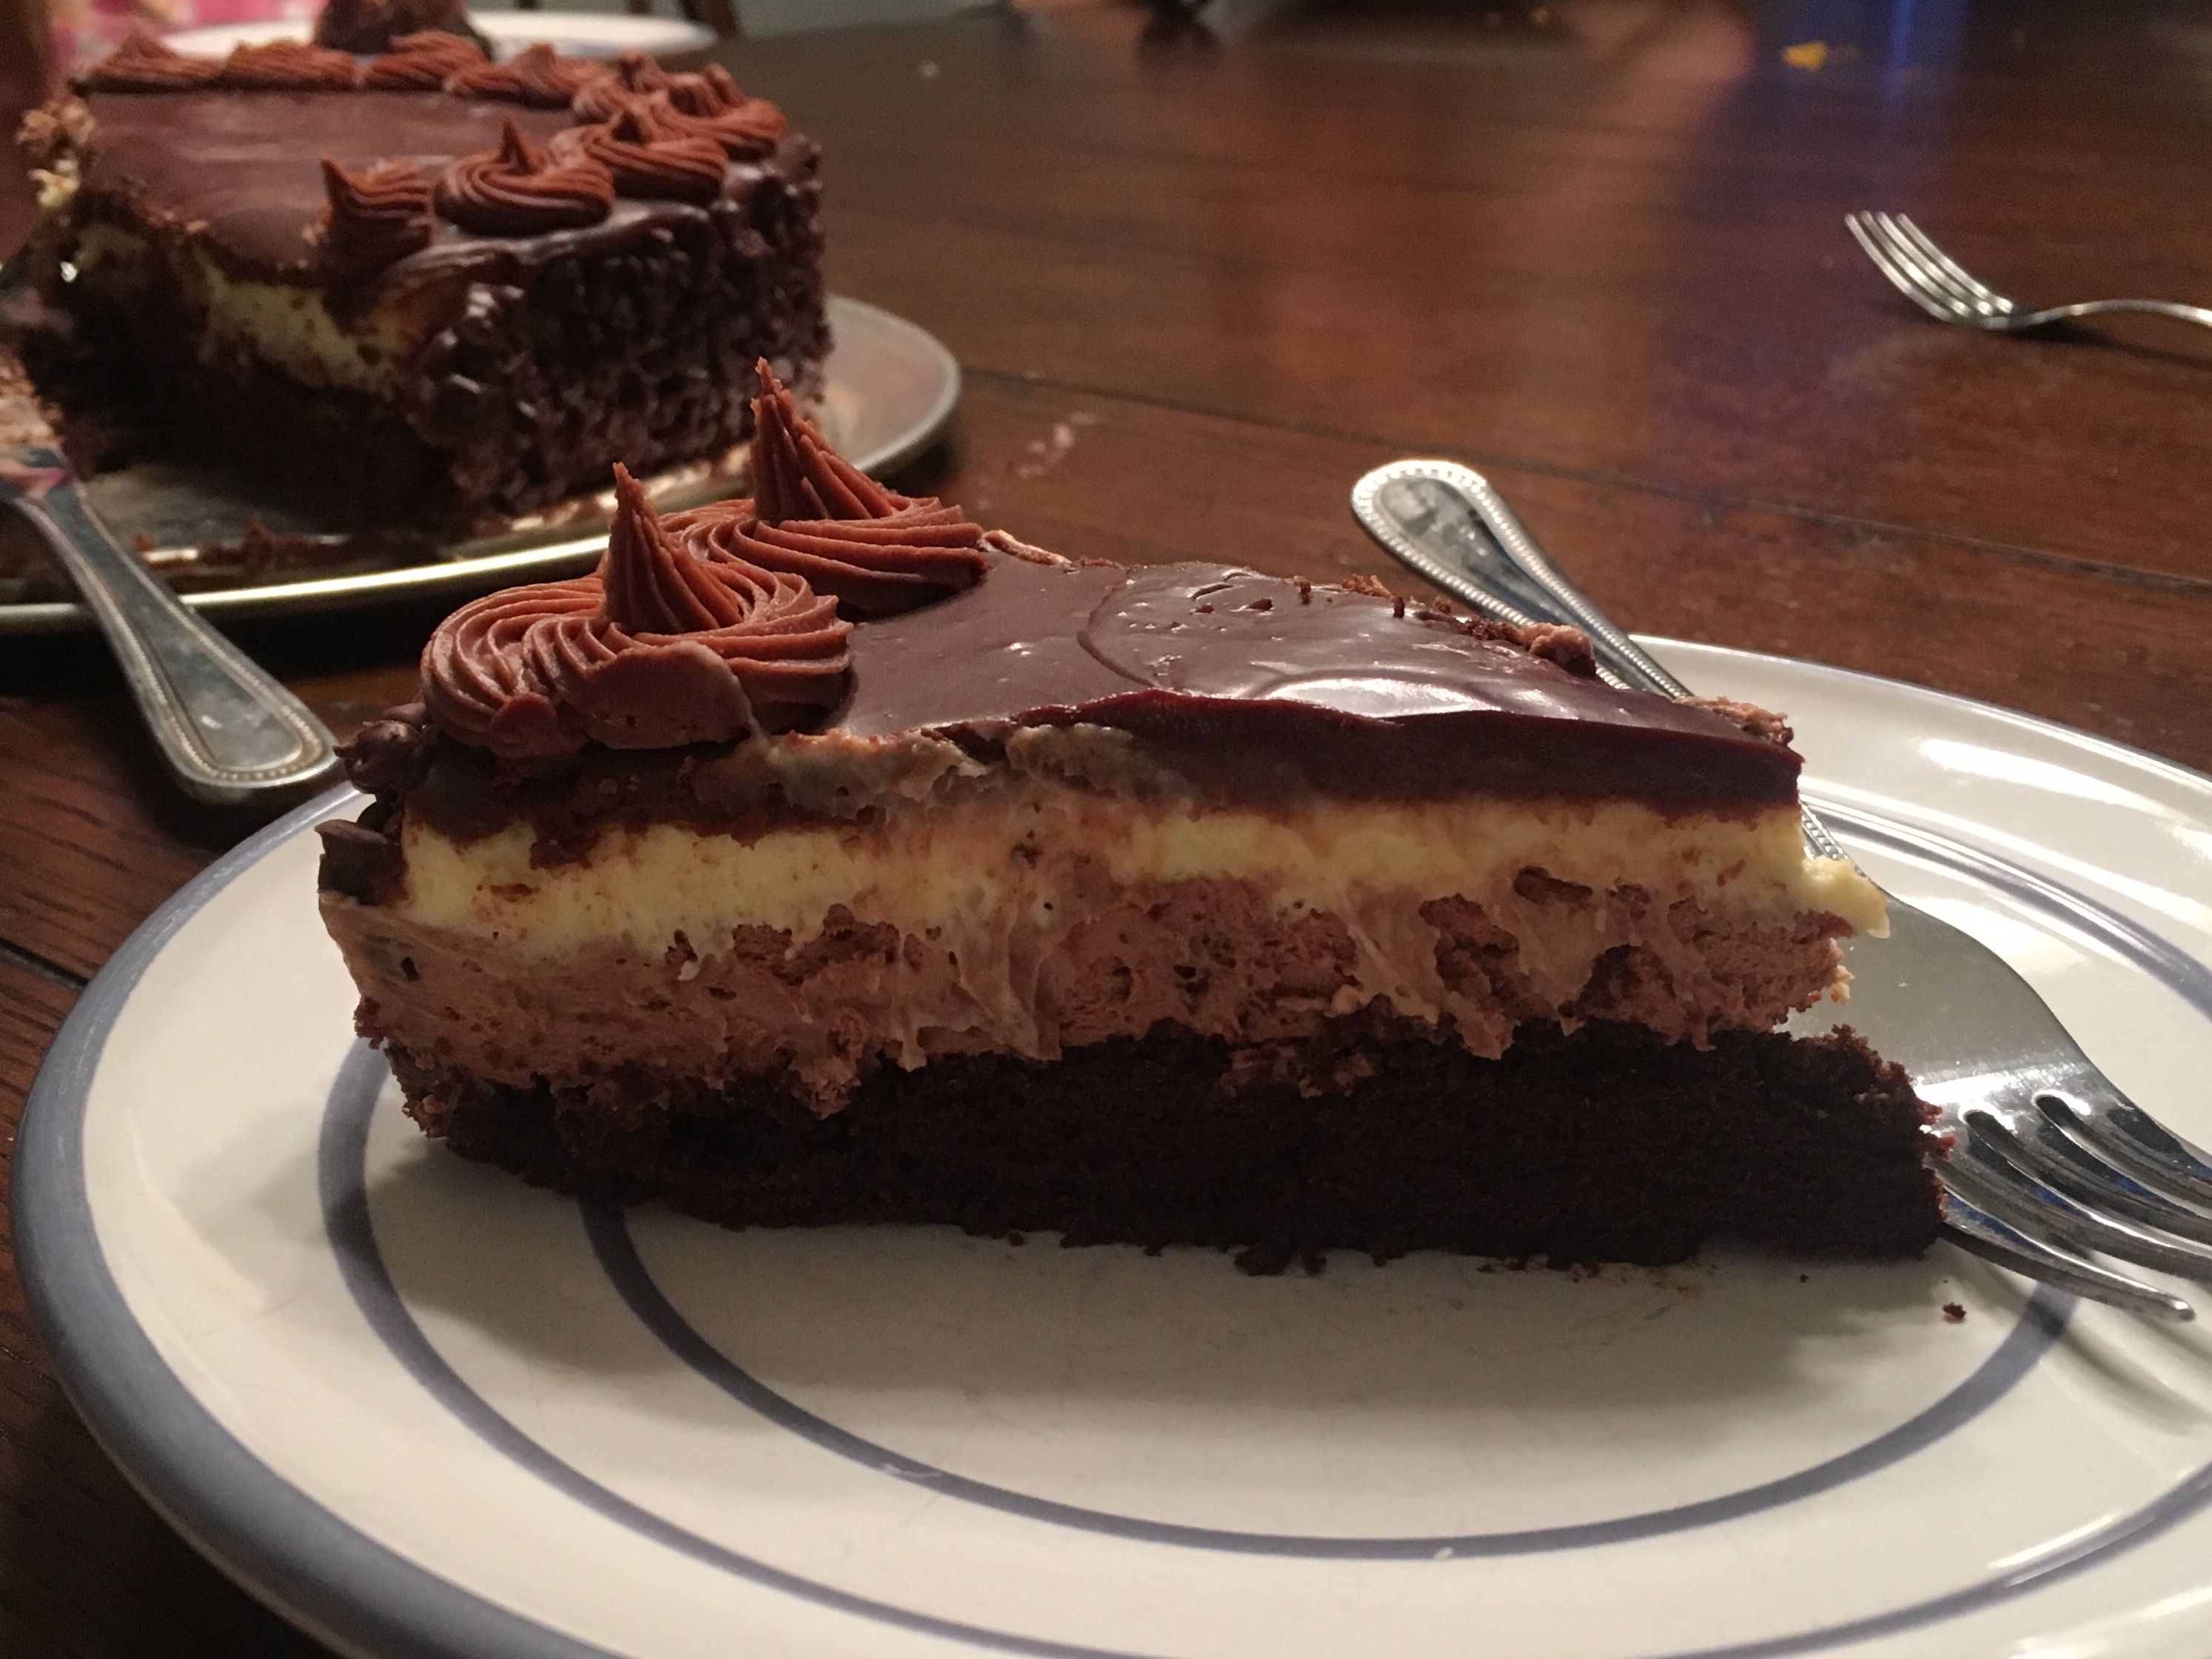 olive garden black tie mousse cake review